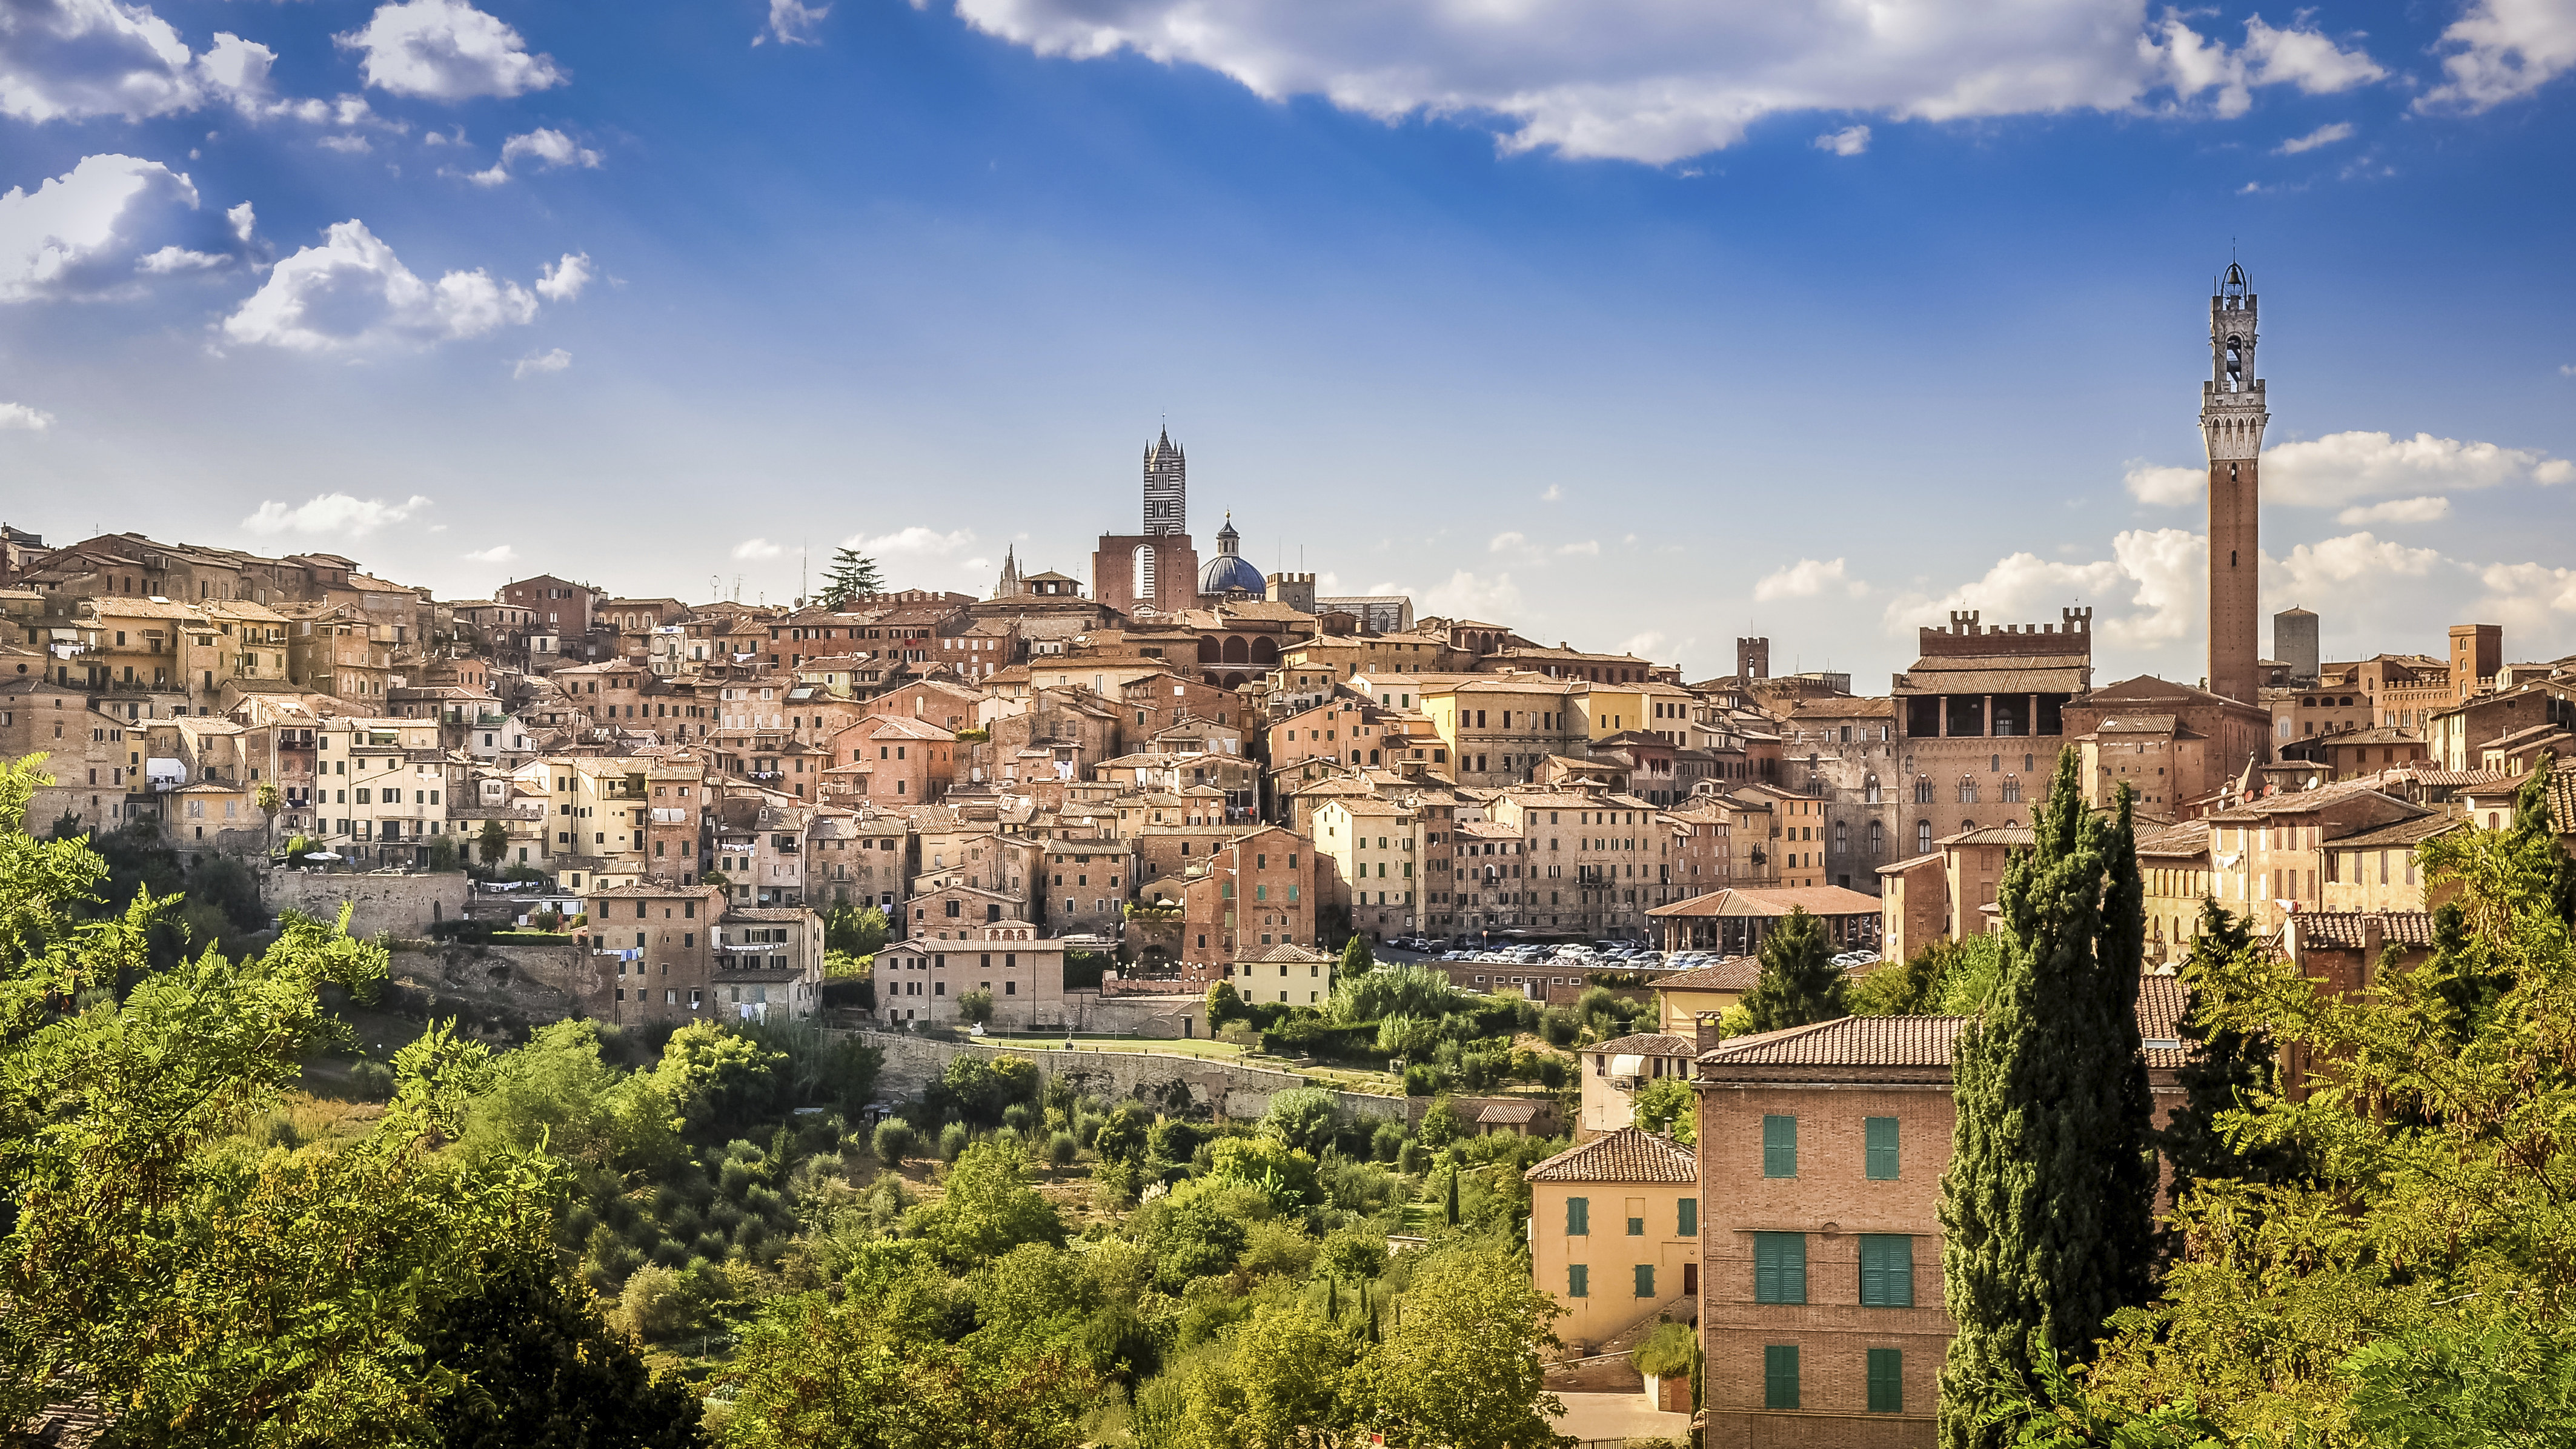 Pisa, Siena, and San Gimignano Day Tour from Florence